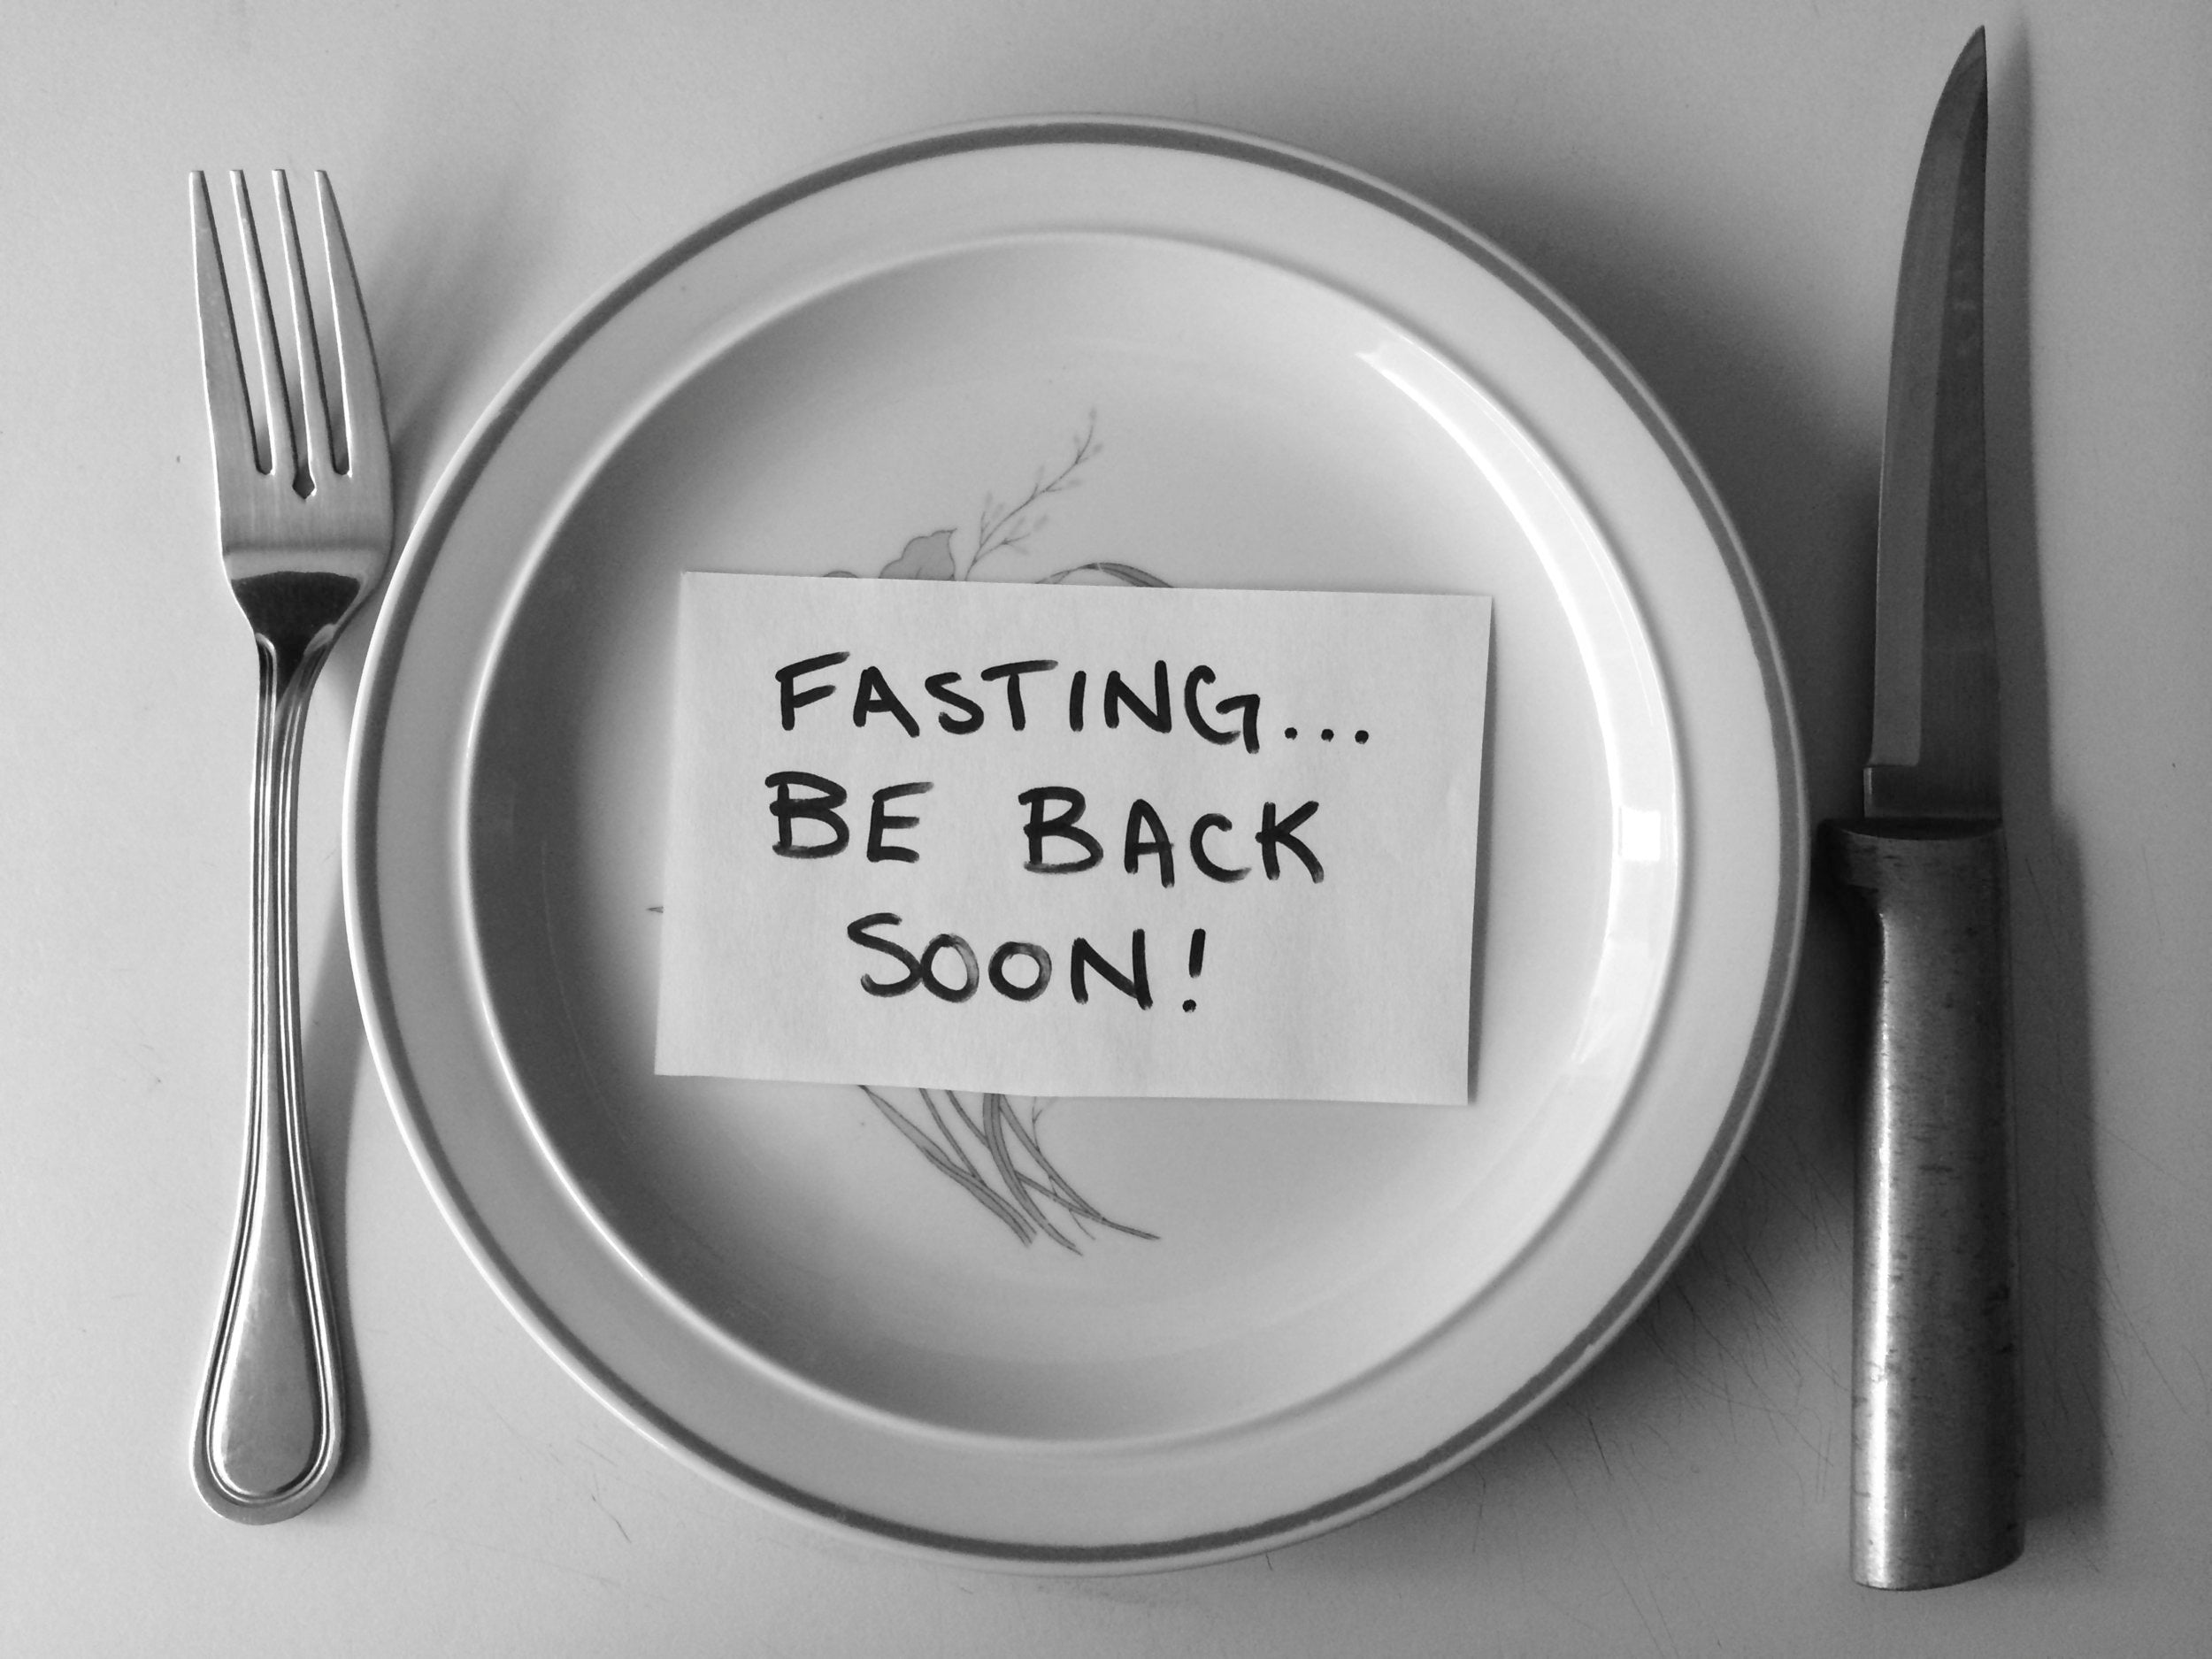 What are the benefits of fasting and how long should you do it?